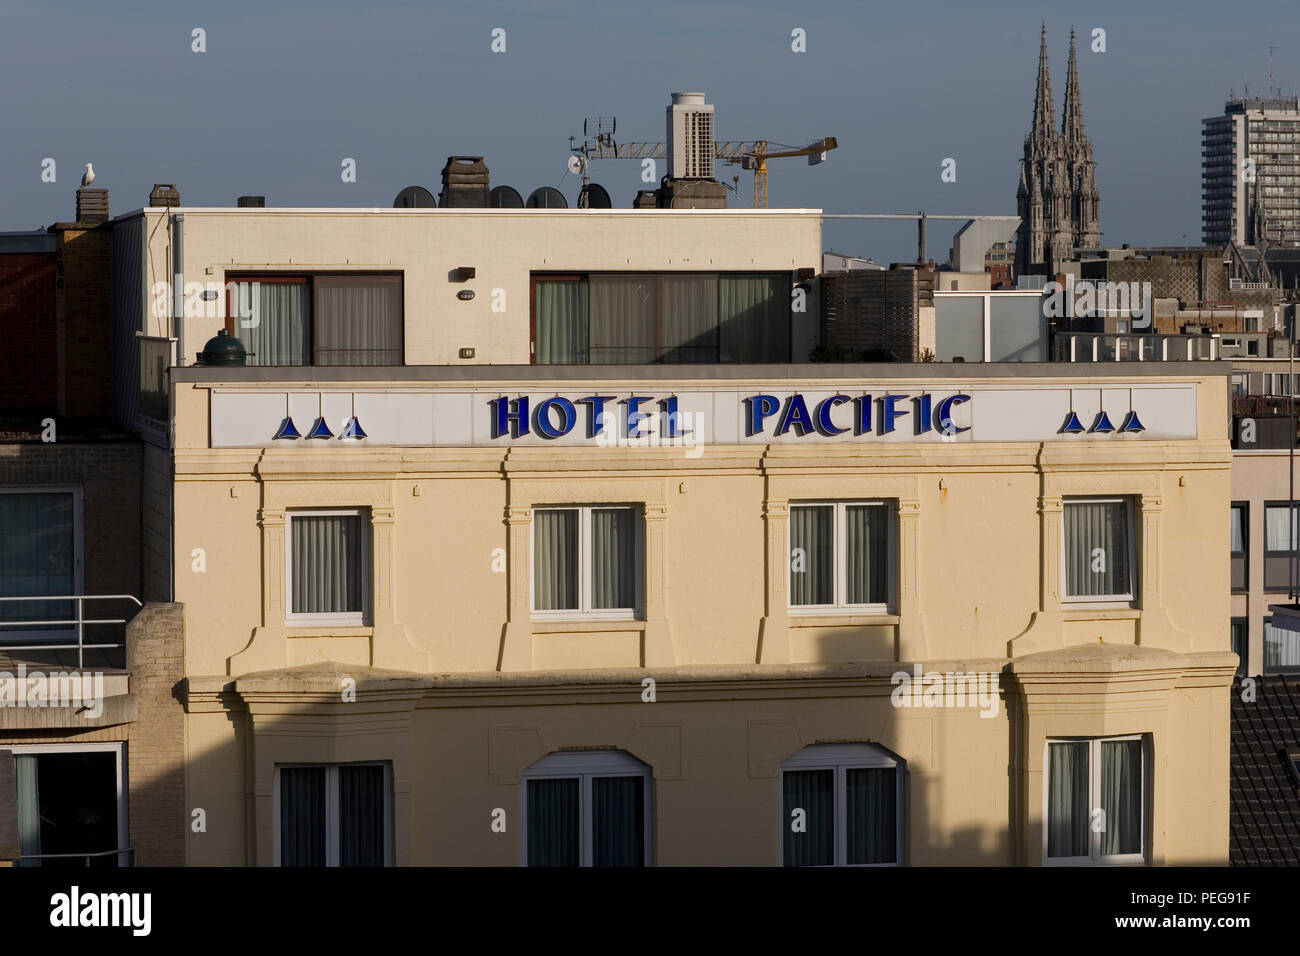 Top of Hotel Pacific seen from balcony of top floor room of a nearby hotel - Stock Image